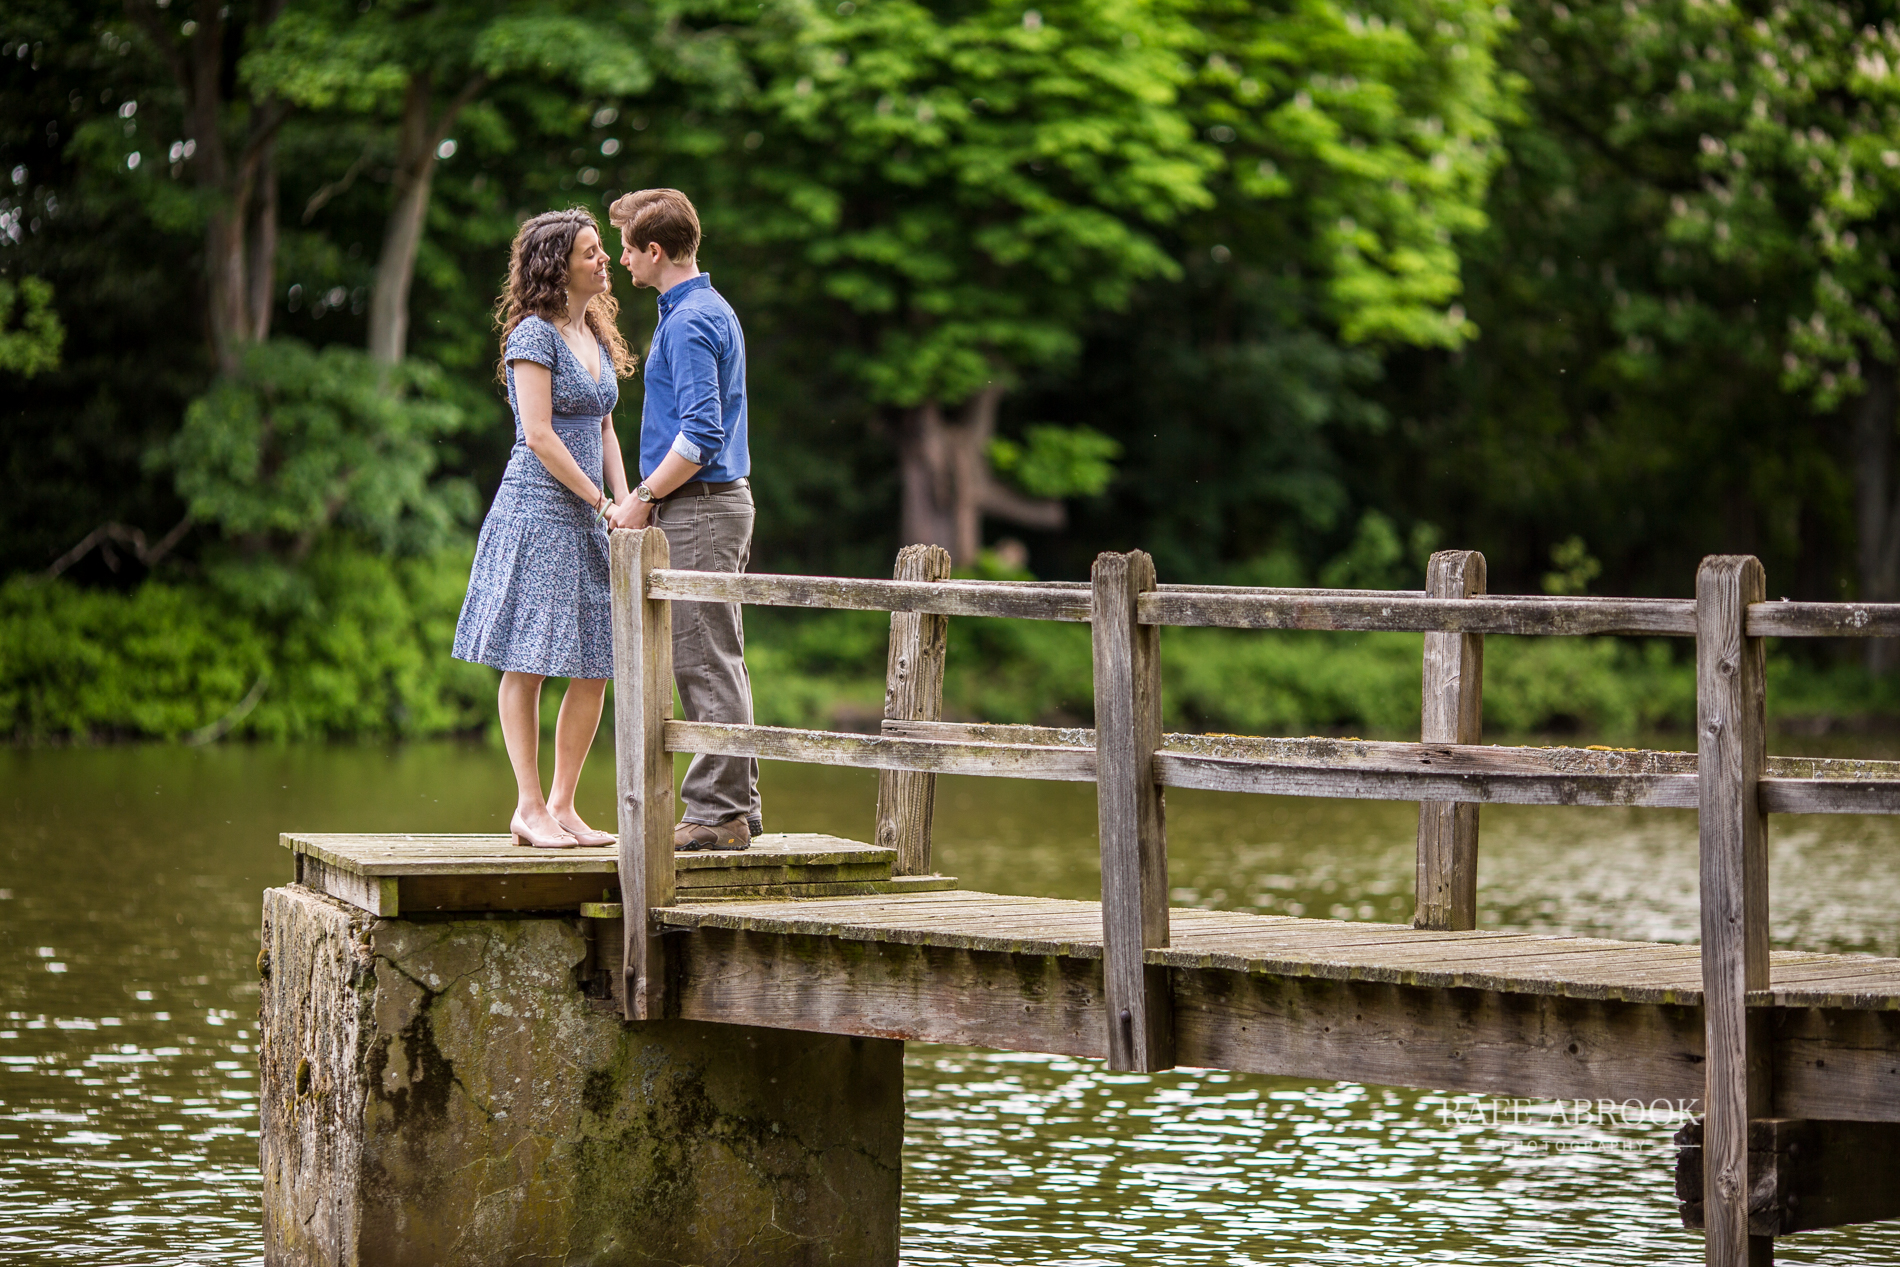 jade & sean engagement shoot knebworth park house hertfordshire-1032.jpg